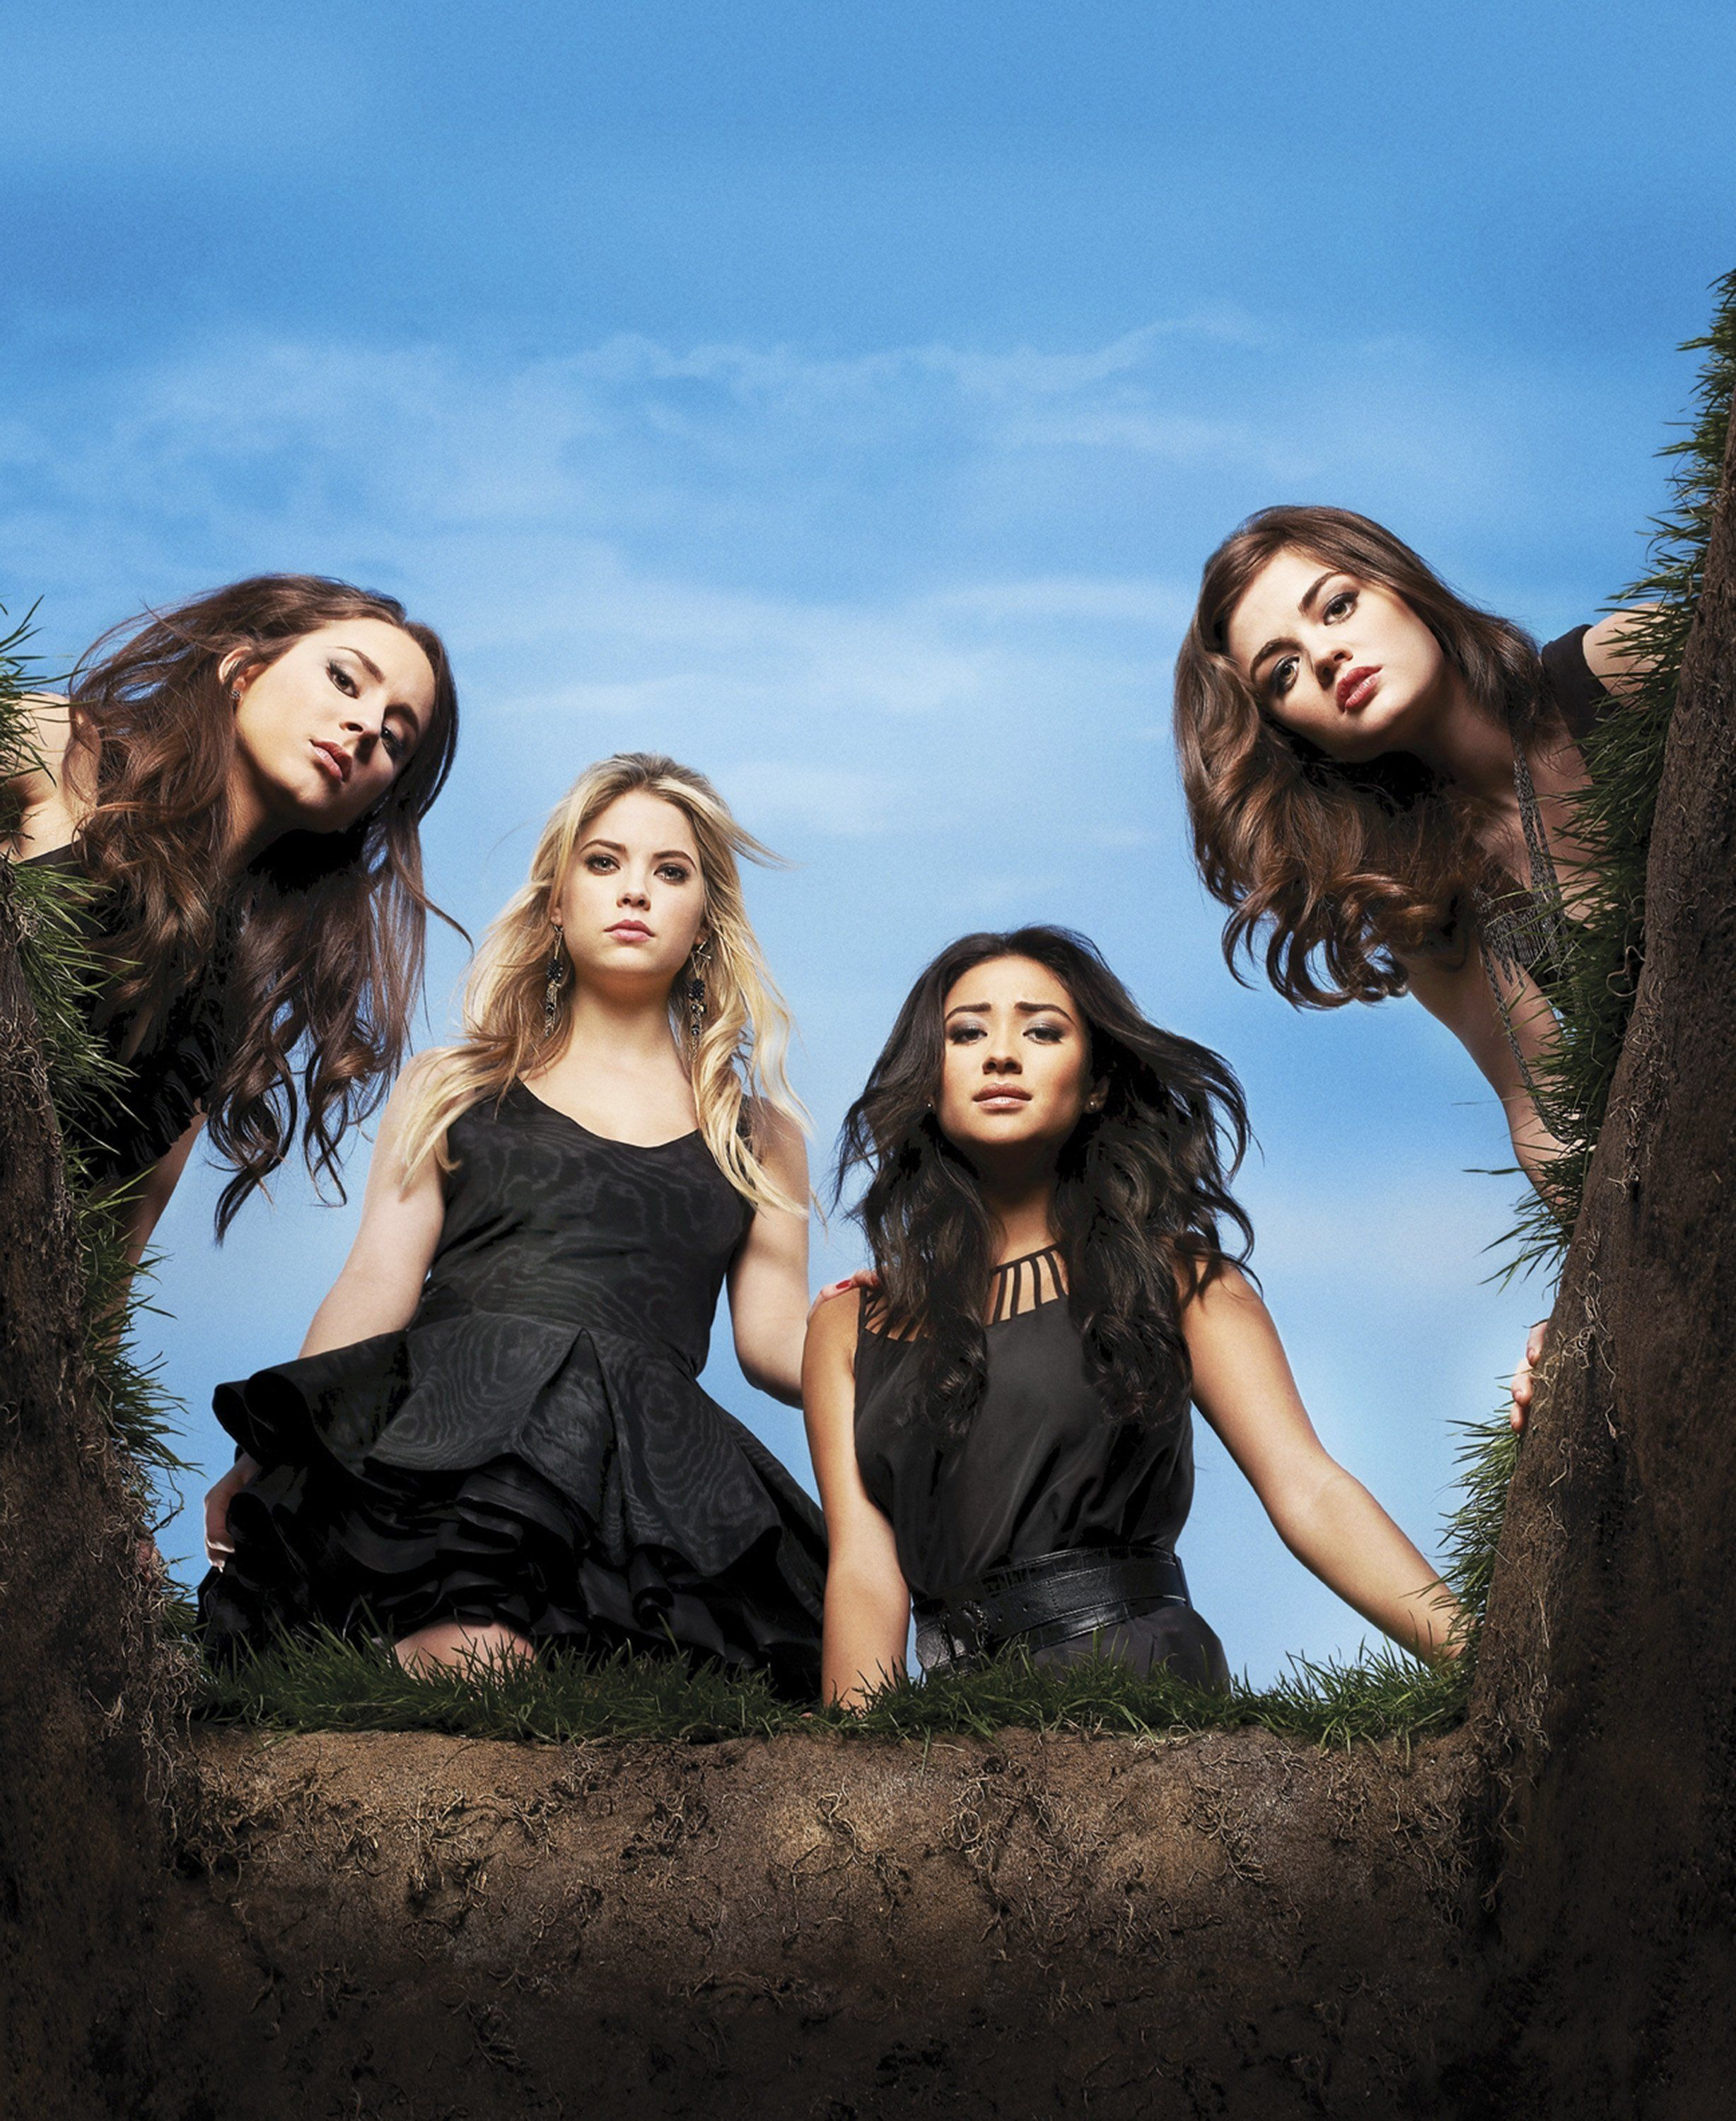 PRETTY LITTLE LIARS - ABC Family's 'Pretty Little Liars' stars Troian Bellisario as Spencer Hastings, Ashley Benson as Hanna Marin, Shay Mitchell as Emily Fields and Lucy Hale as Aria Montgomery. (Photo by Andrew Eccles/ABC Family via Getty Images)